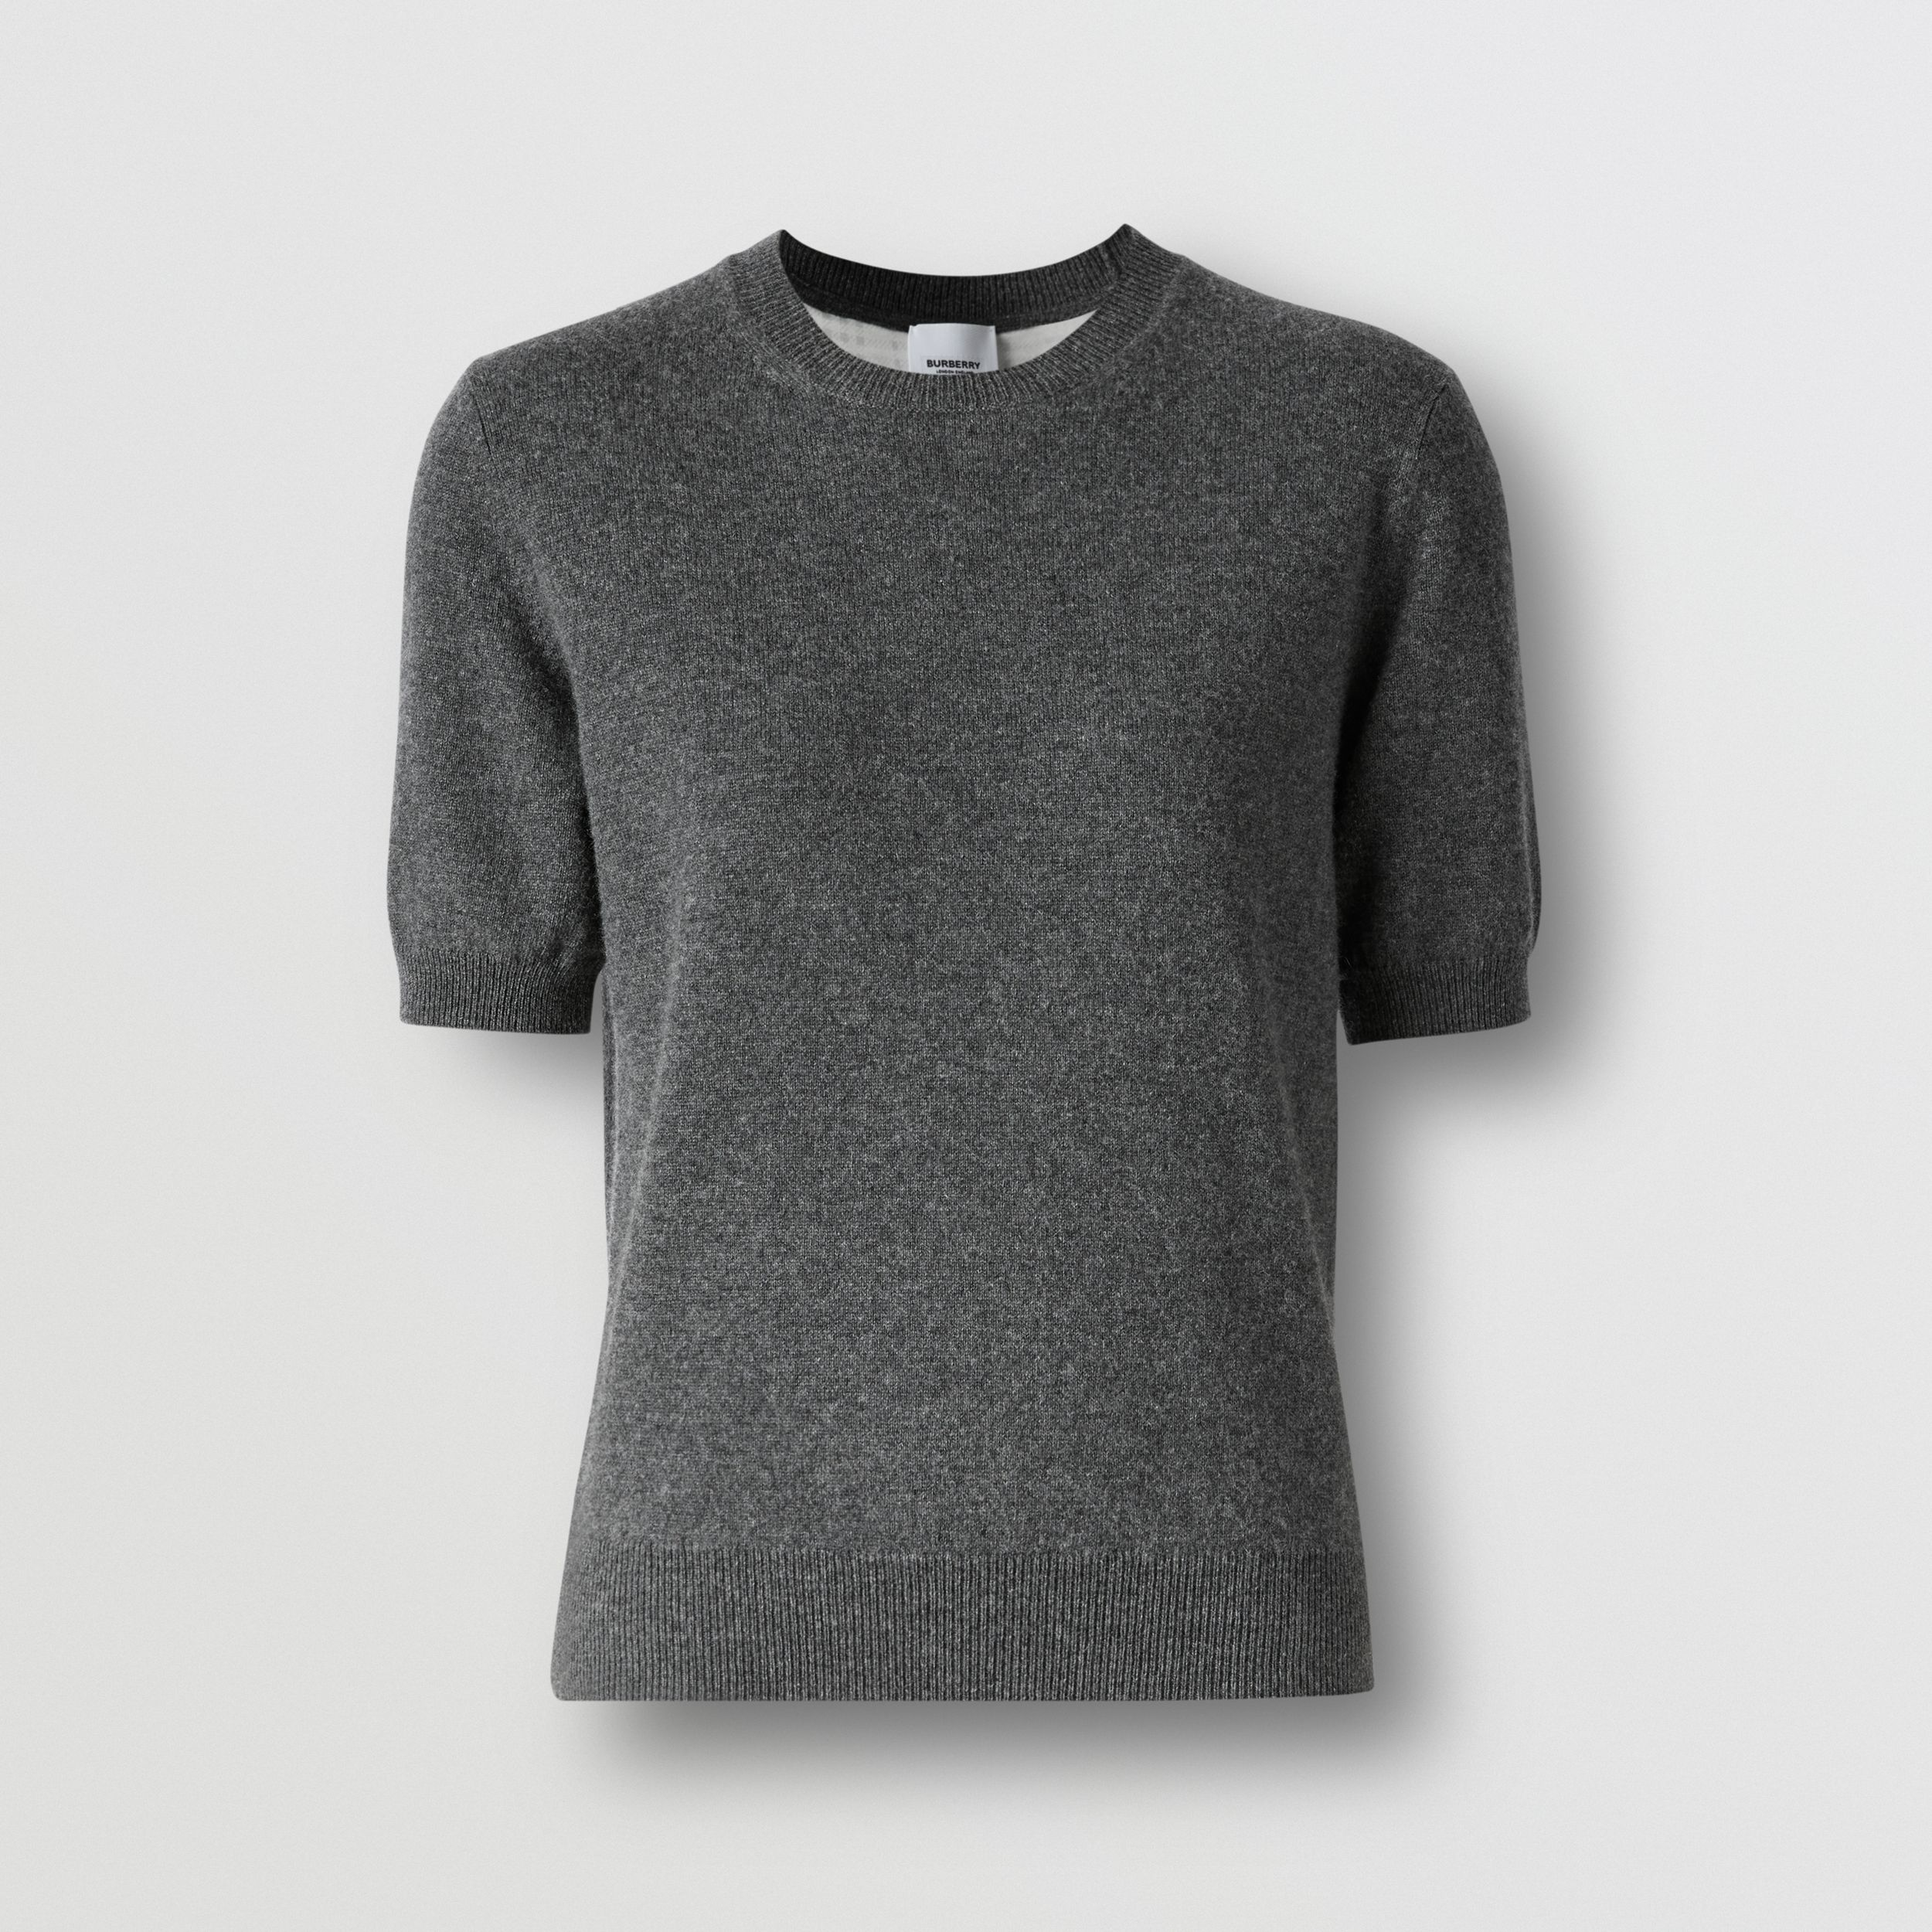 Short-sleeve Cashmere Top in Grey Melange - Women | Burberry - 4